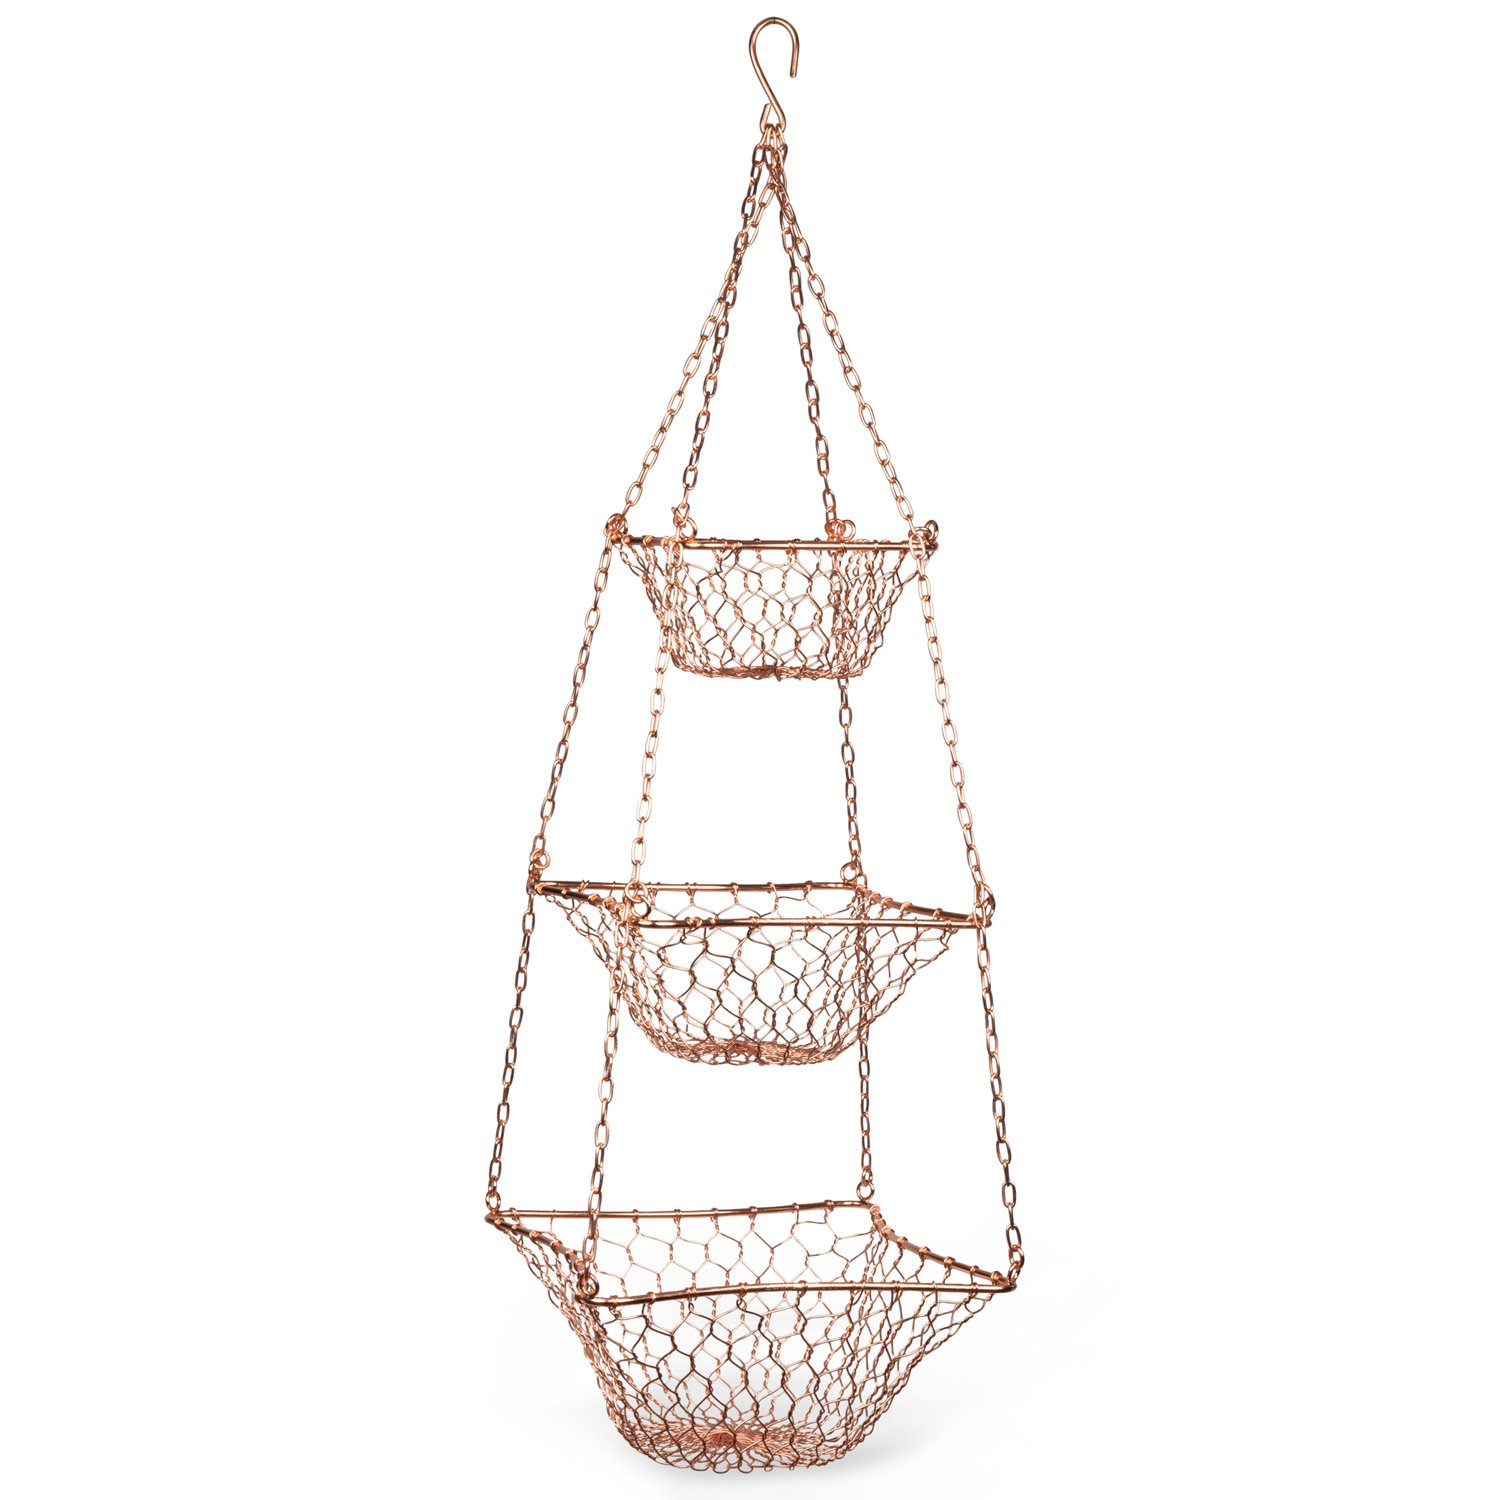 Ten Thousand Villages Copper Colored Tiered Metal Basket 'Tiered Hanging Wire Basket'